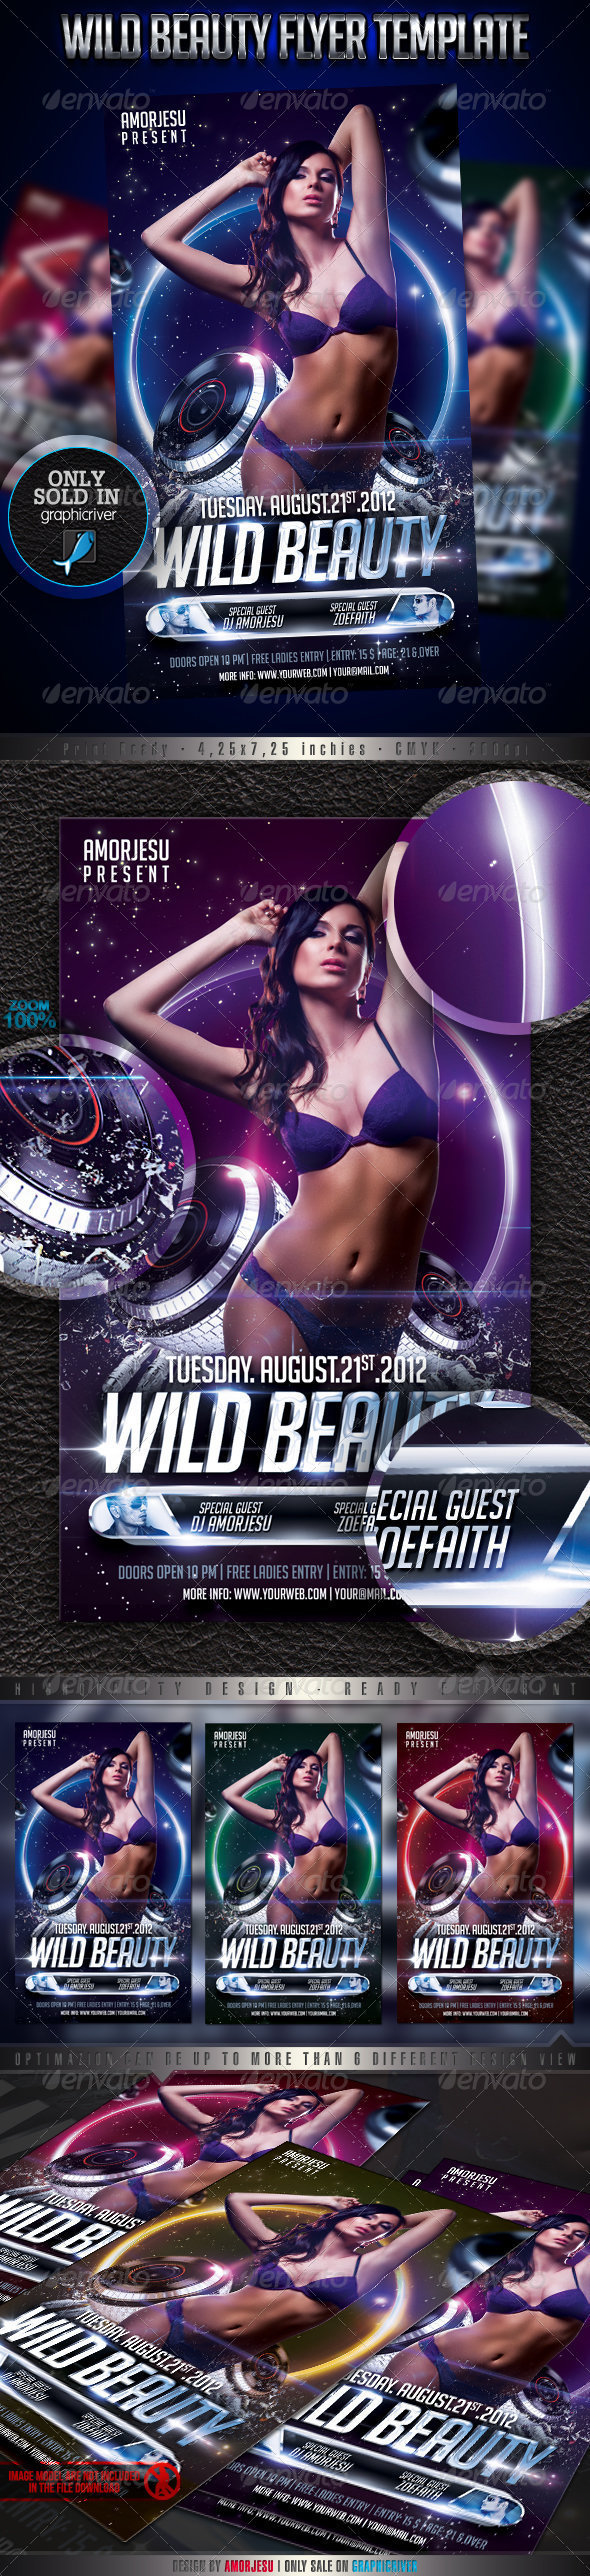 Wild Beauty Flyer Template - Events Flyers